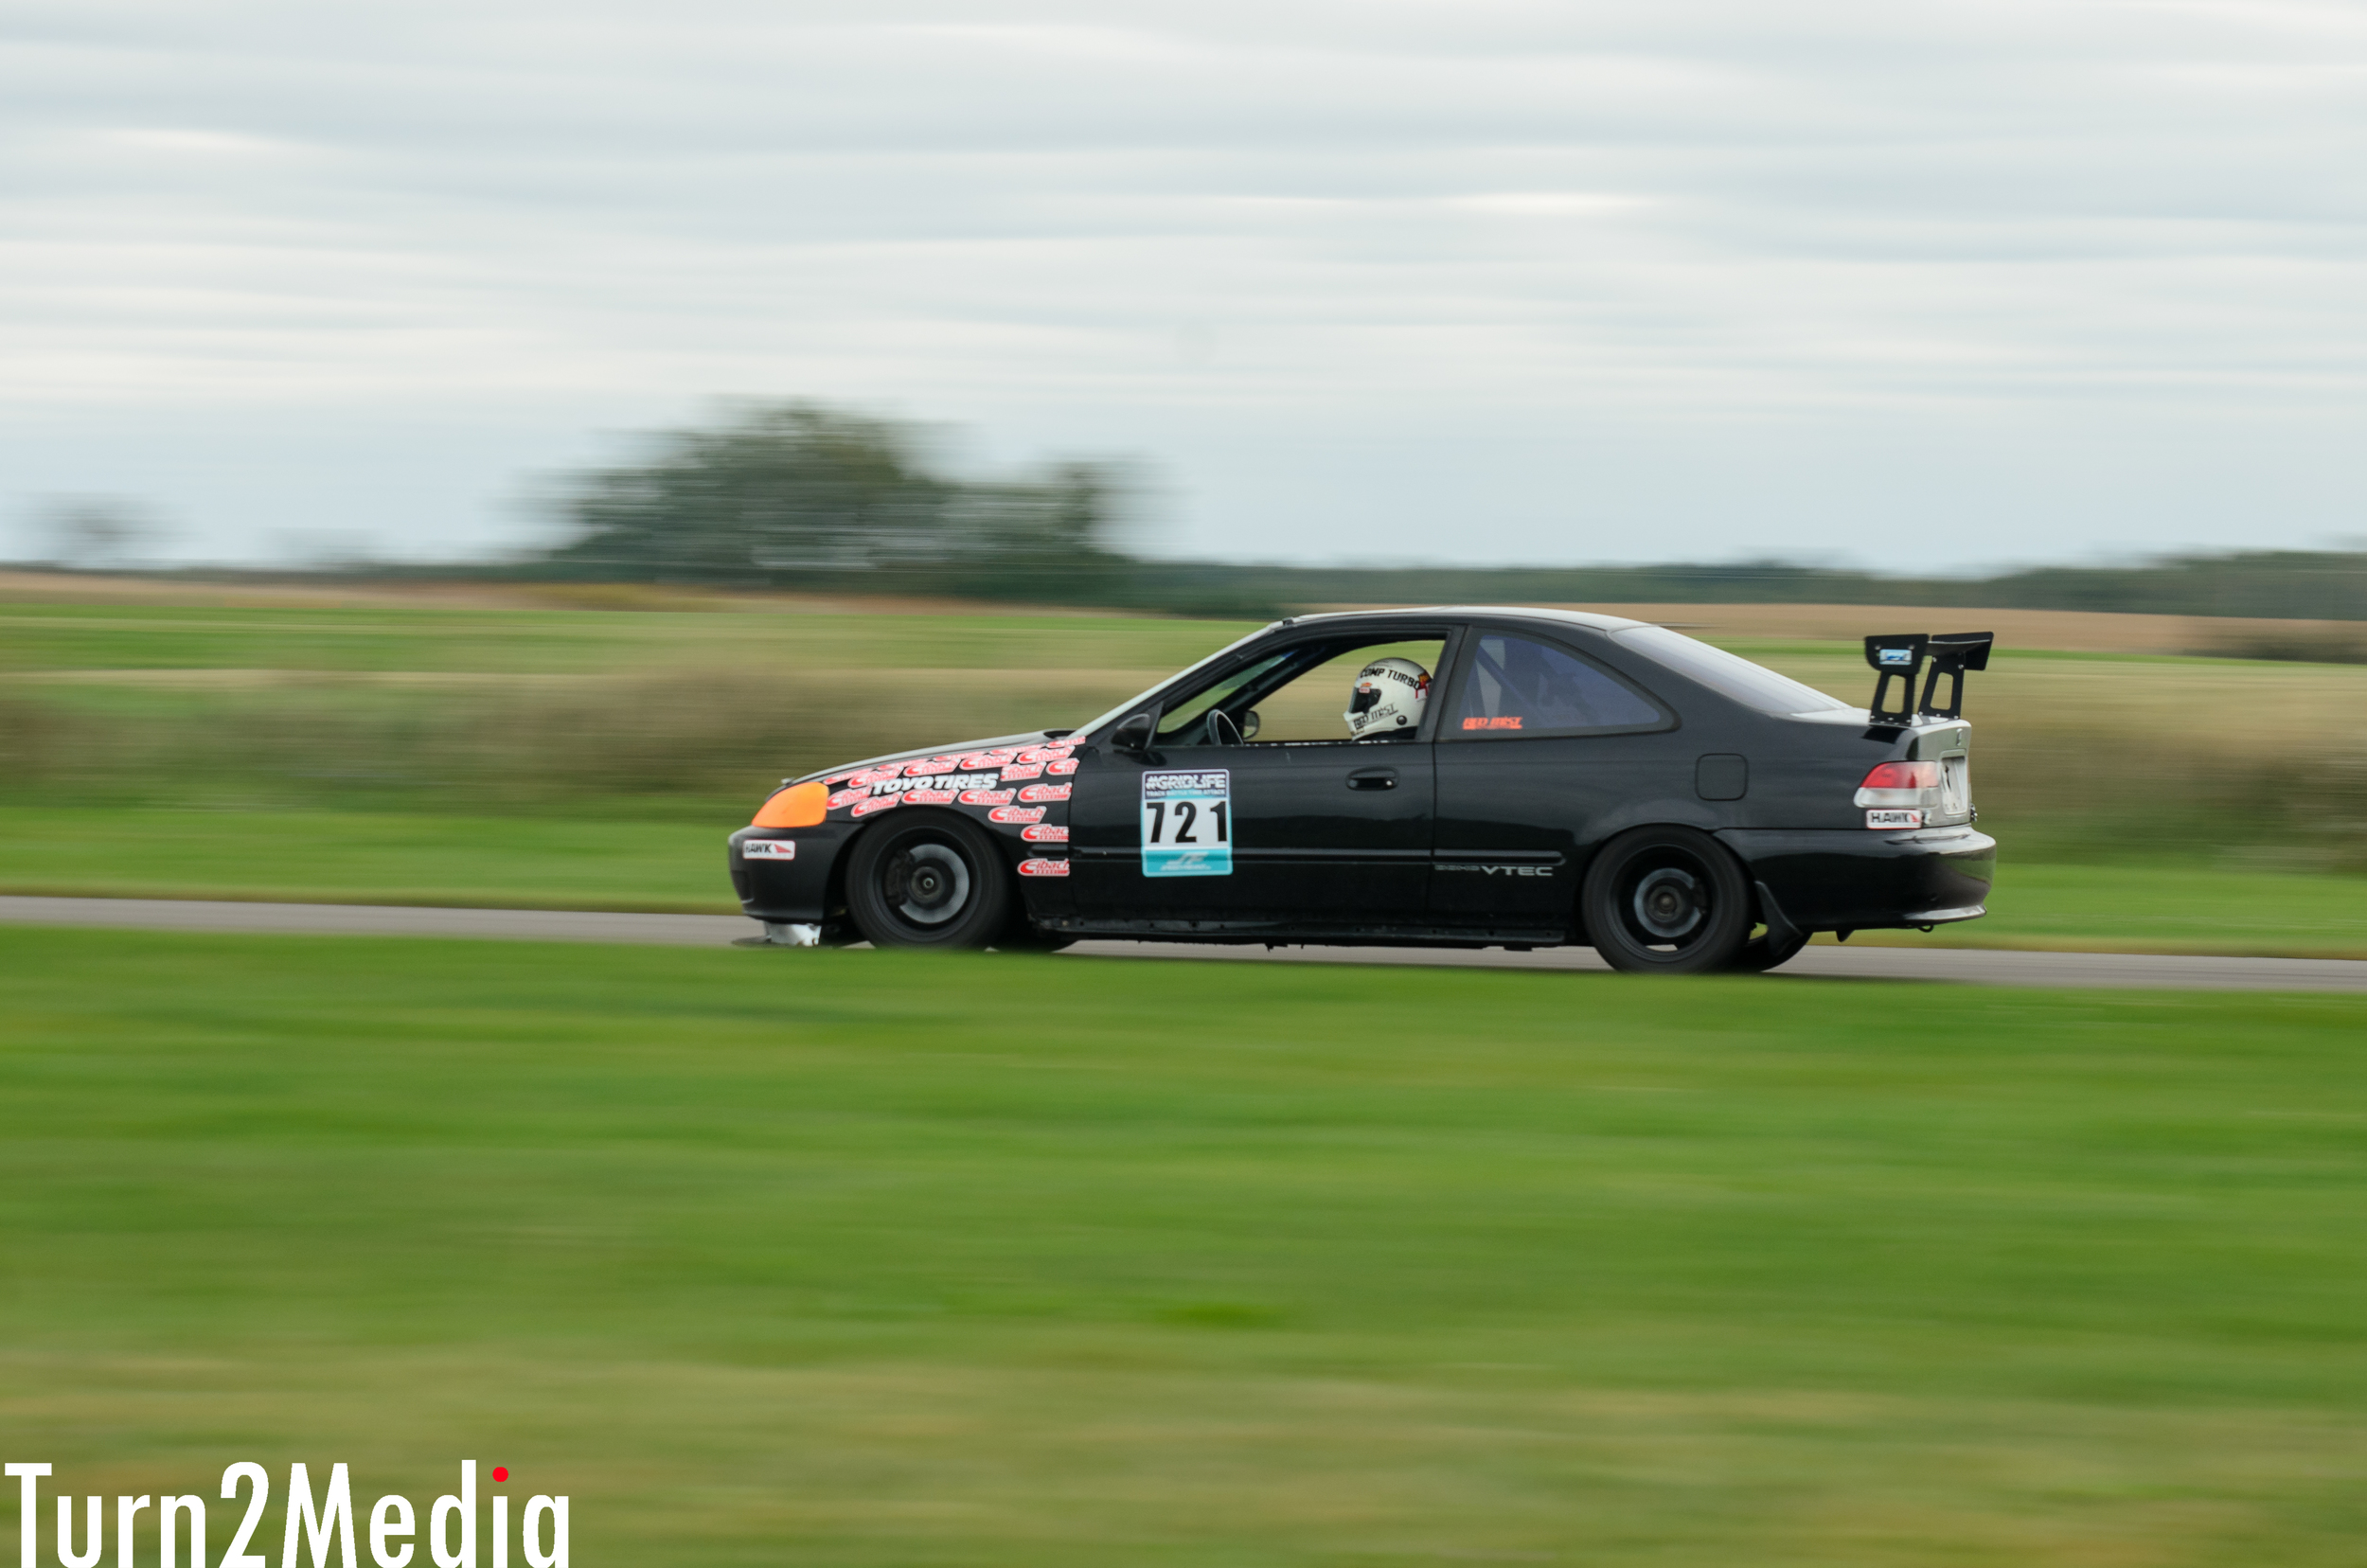 Jake Kaminskis Racing  will be back this year, with a full season of testing done and a new diff its going to be awesome to see what this Honda Challenge car can put down in the wide open world of time attack.